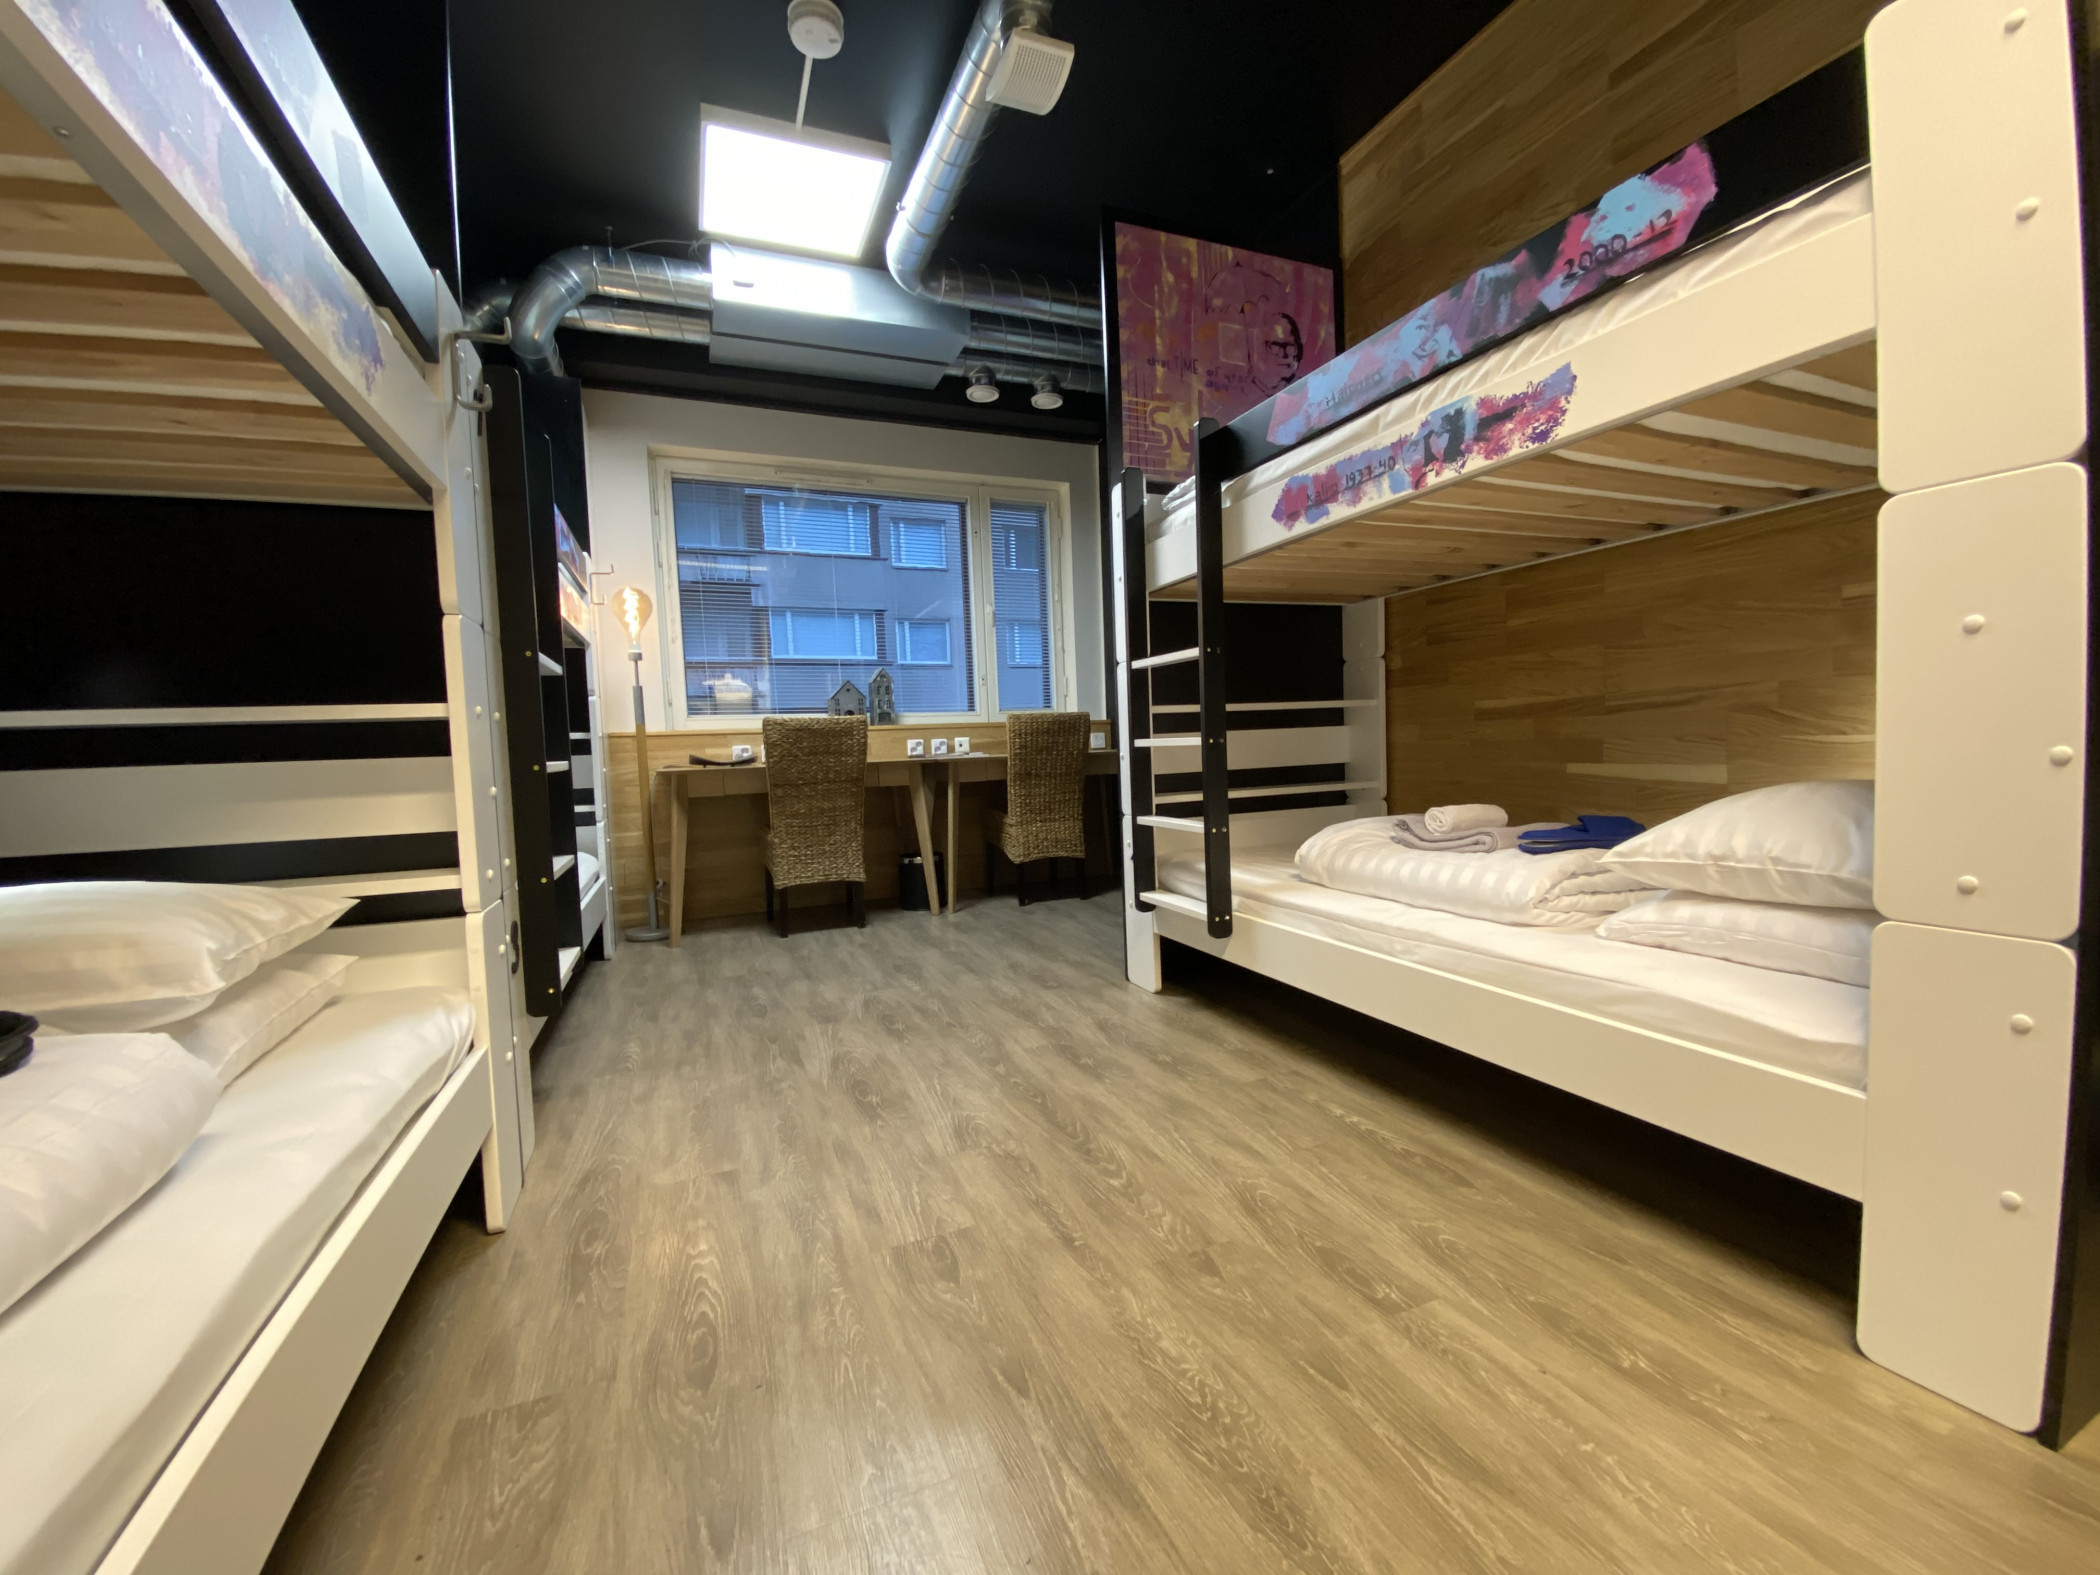 Time Hostel dormitory room 7 Bed 3